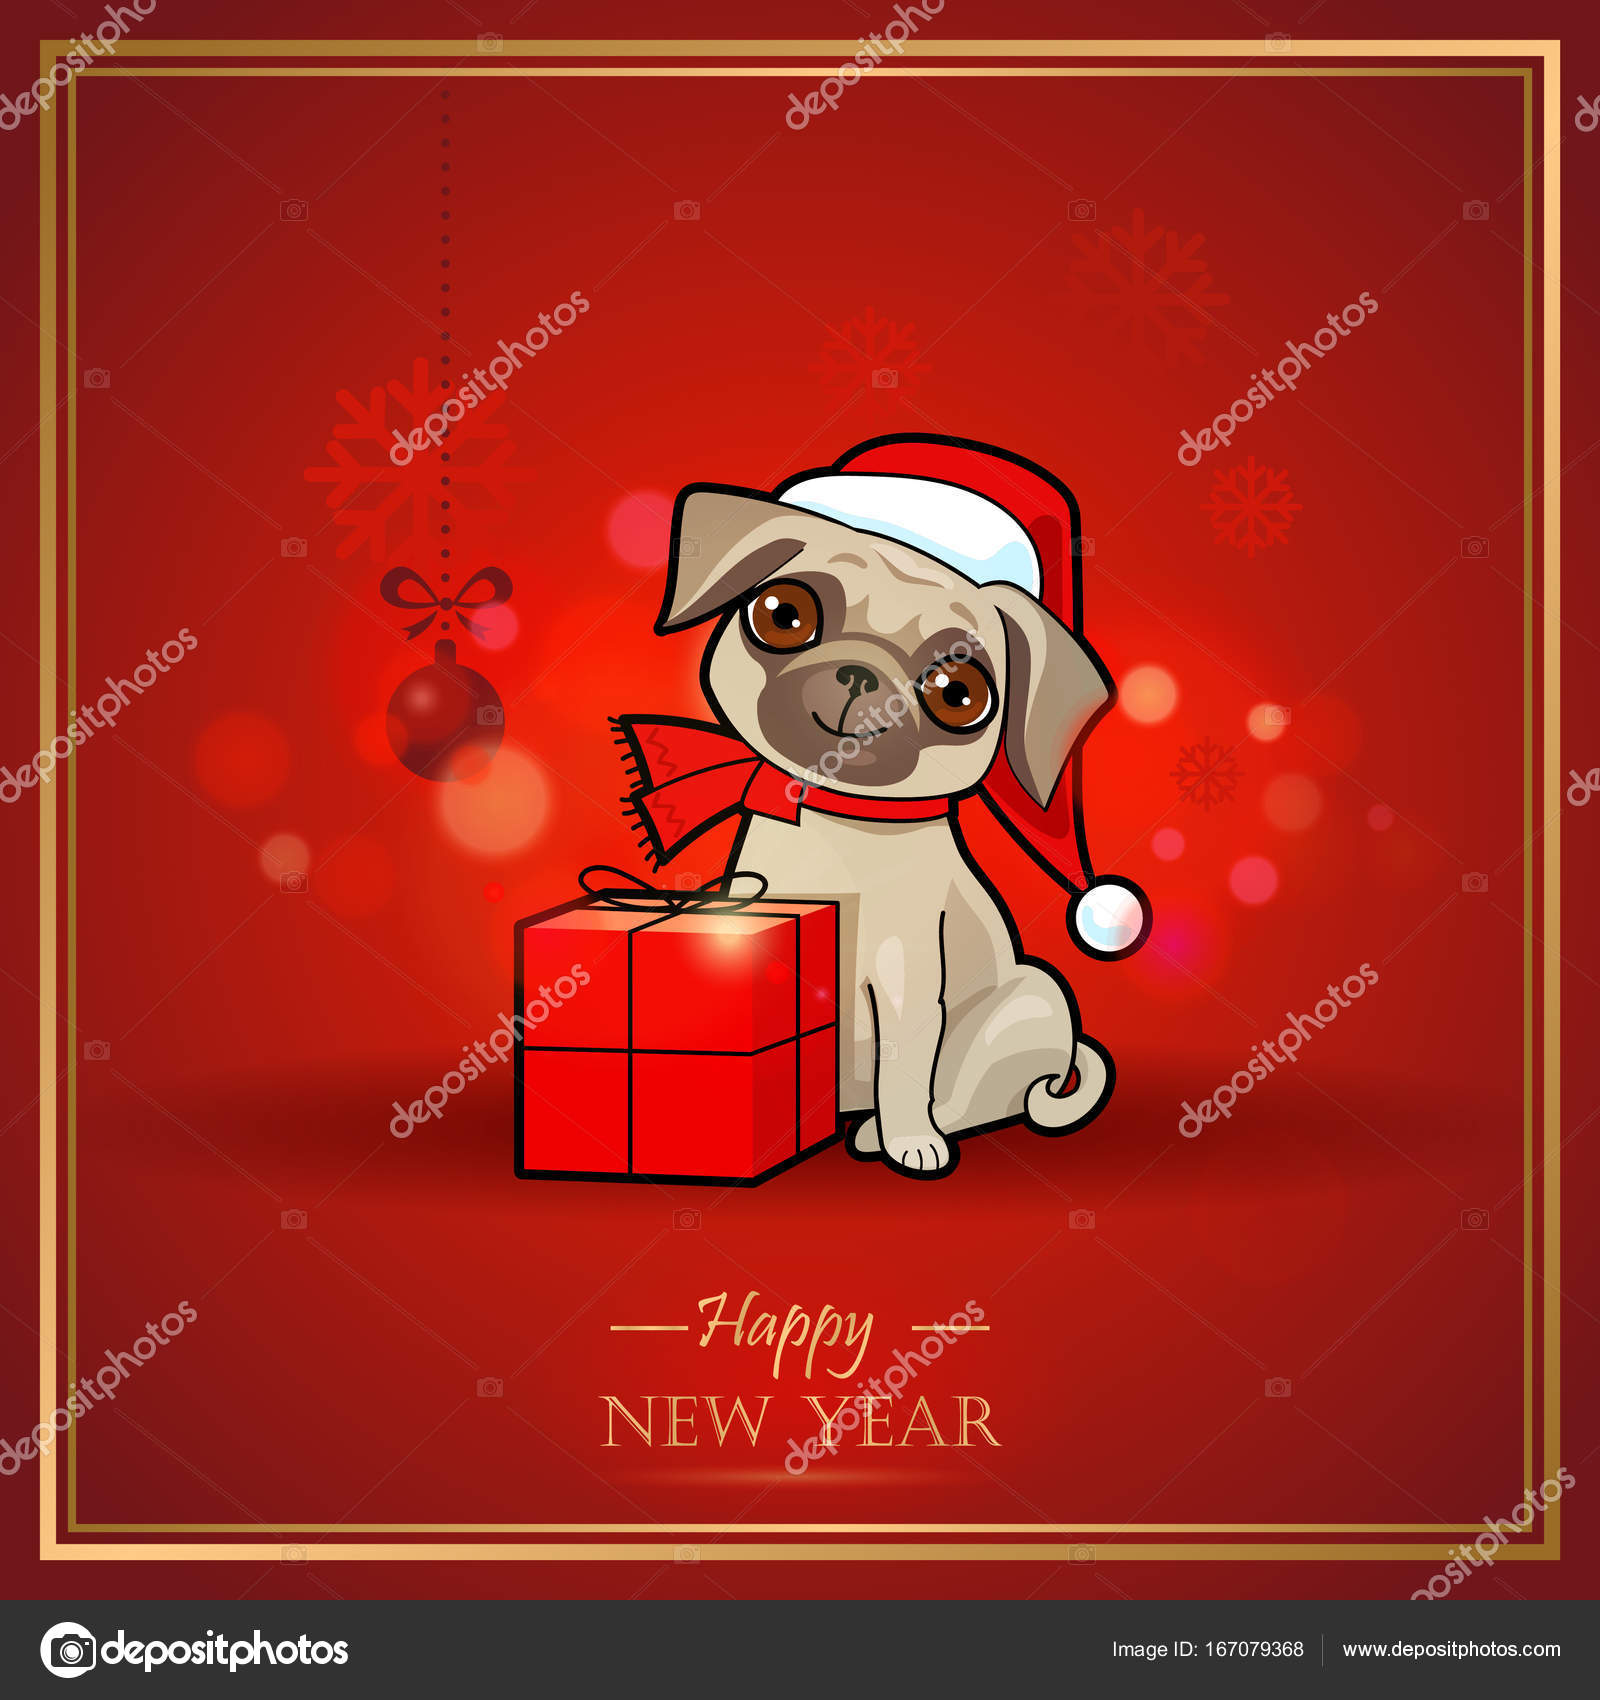 Christmas And New Year Card With Cute Dog Christmas Design Greeting